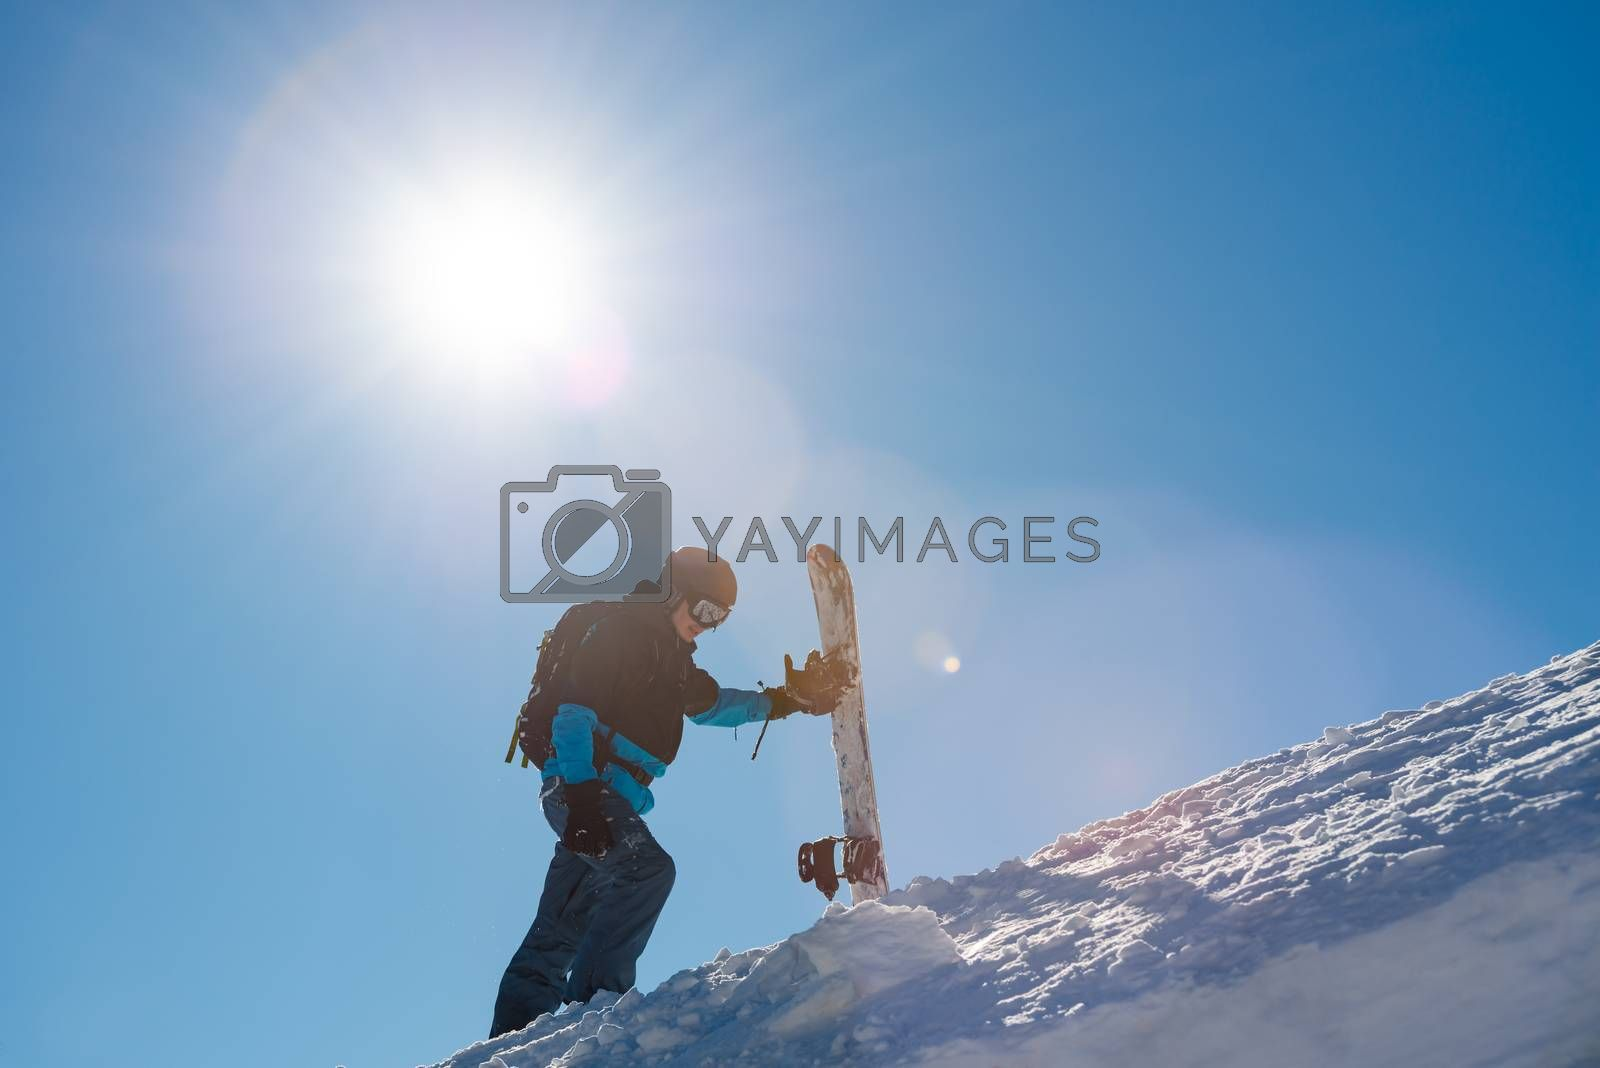 Snowboarder Climbing to the Top of the Slope with Red Snowboard in the Mountains at Sunny Day. Snowboarding and Winter Sports